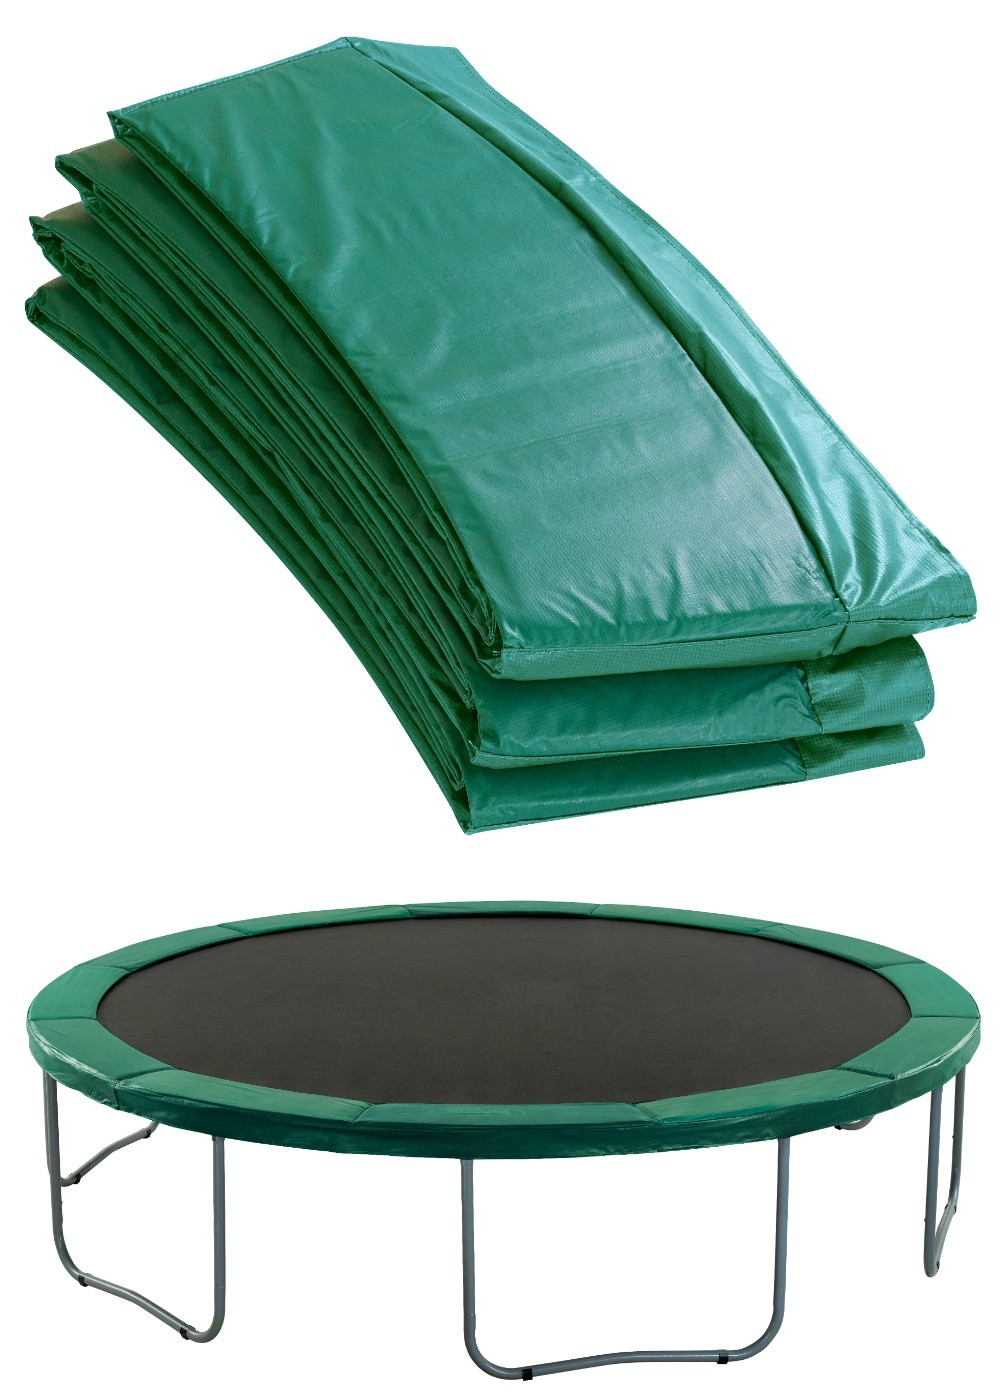 Premium Trampoline Replacement Safety Pad (Spring Cover) | Padding for 427cm 14ft Trampoline | Green